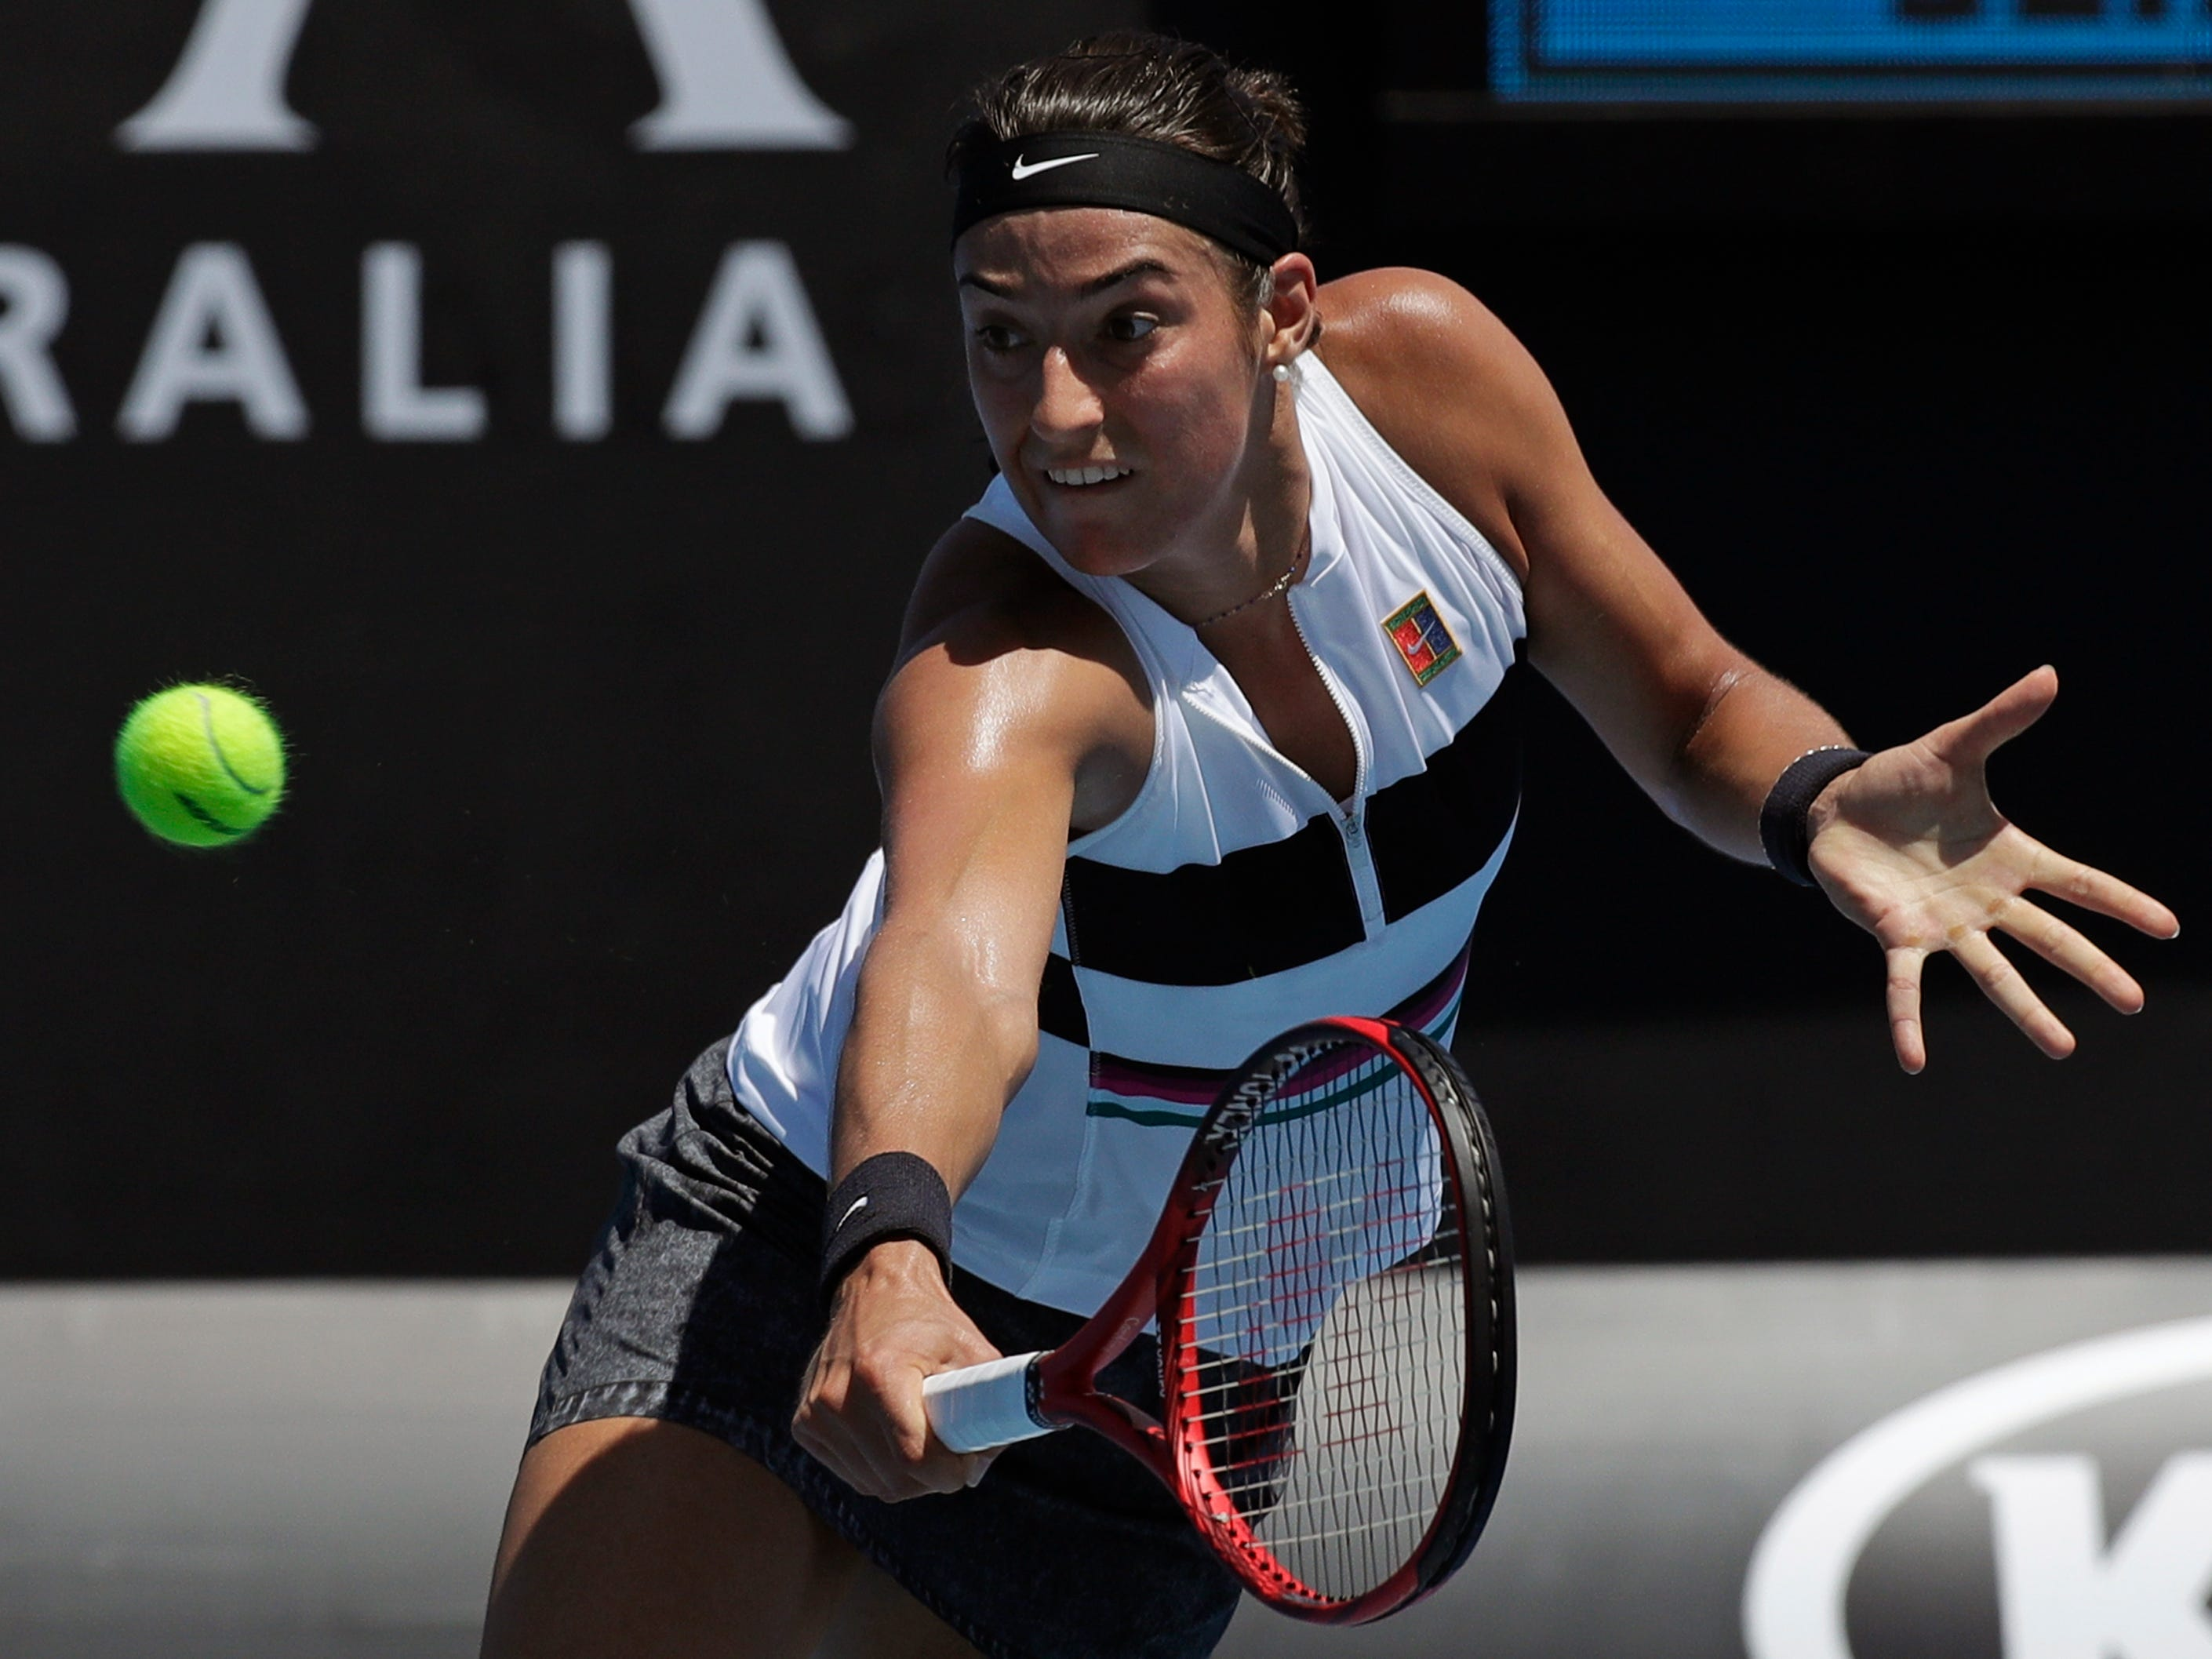 France's Caroline Garcia, the No. 19 seed, plays a backhand to compatriot Jessika Ponchet during her 6-2, 6-3 first-round win.